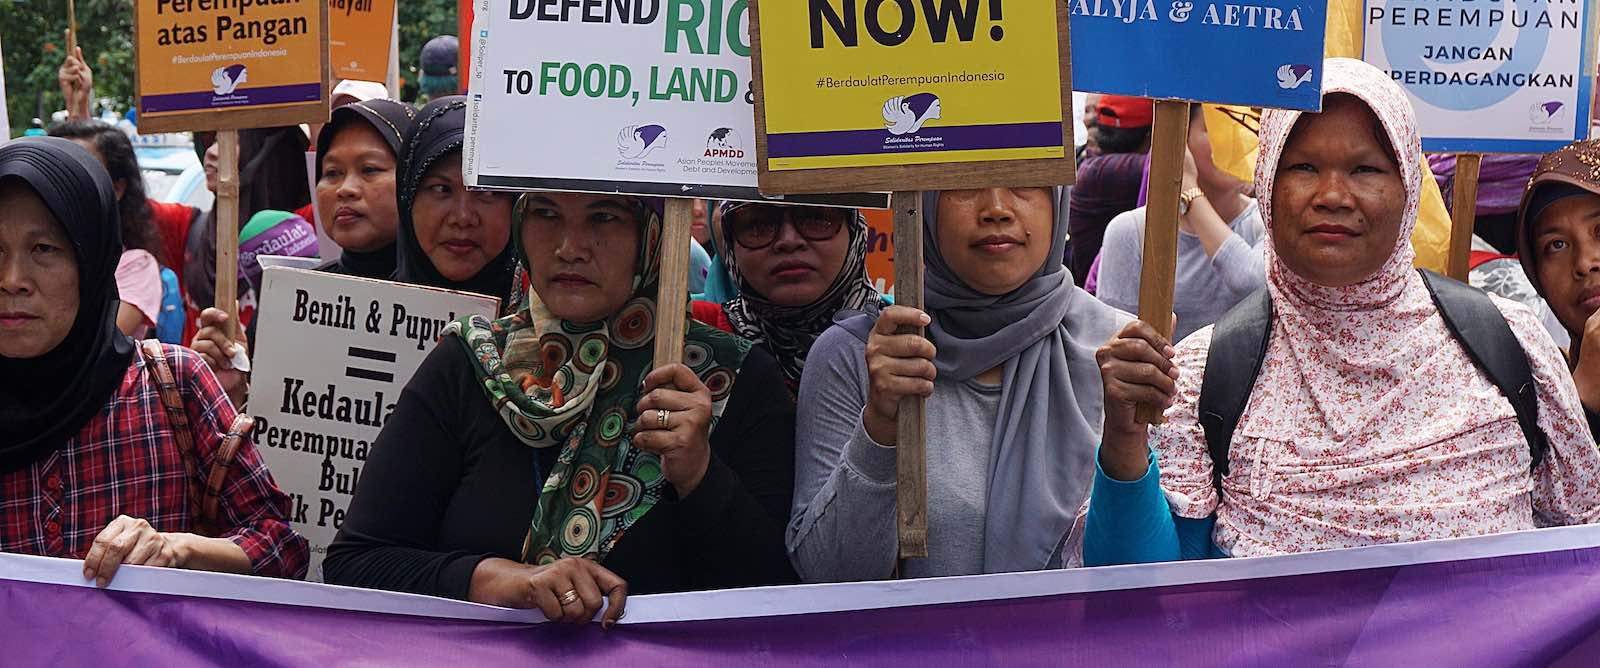 Placards in Jakarta to support International Women's Day in 2017 (Photo: Jefta Images via Getty)